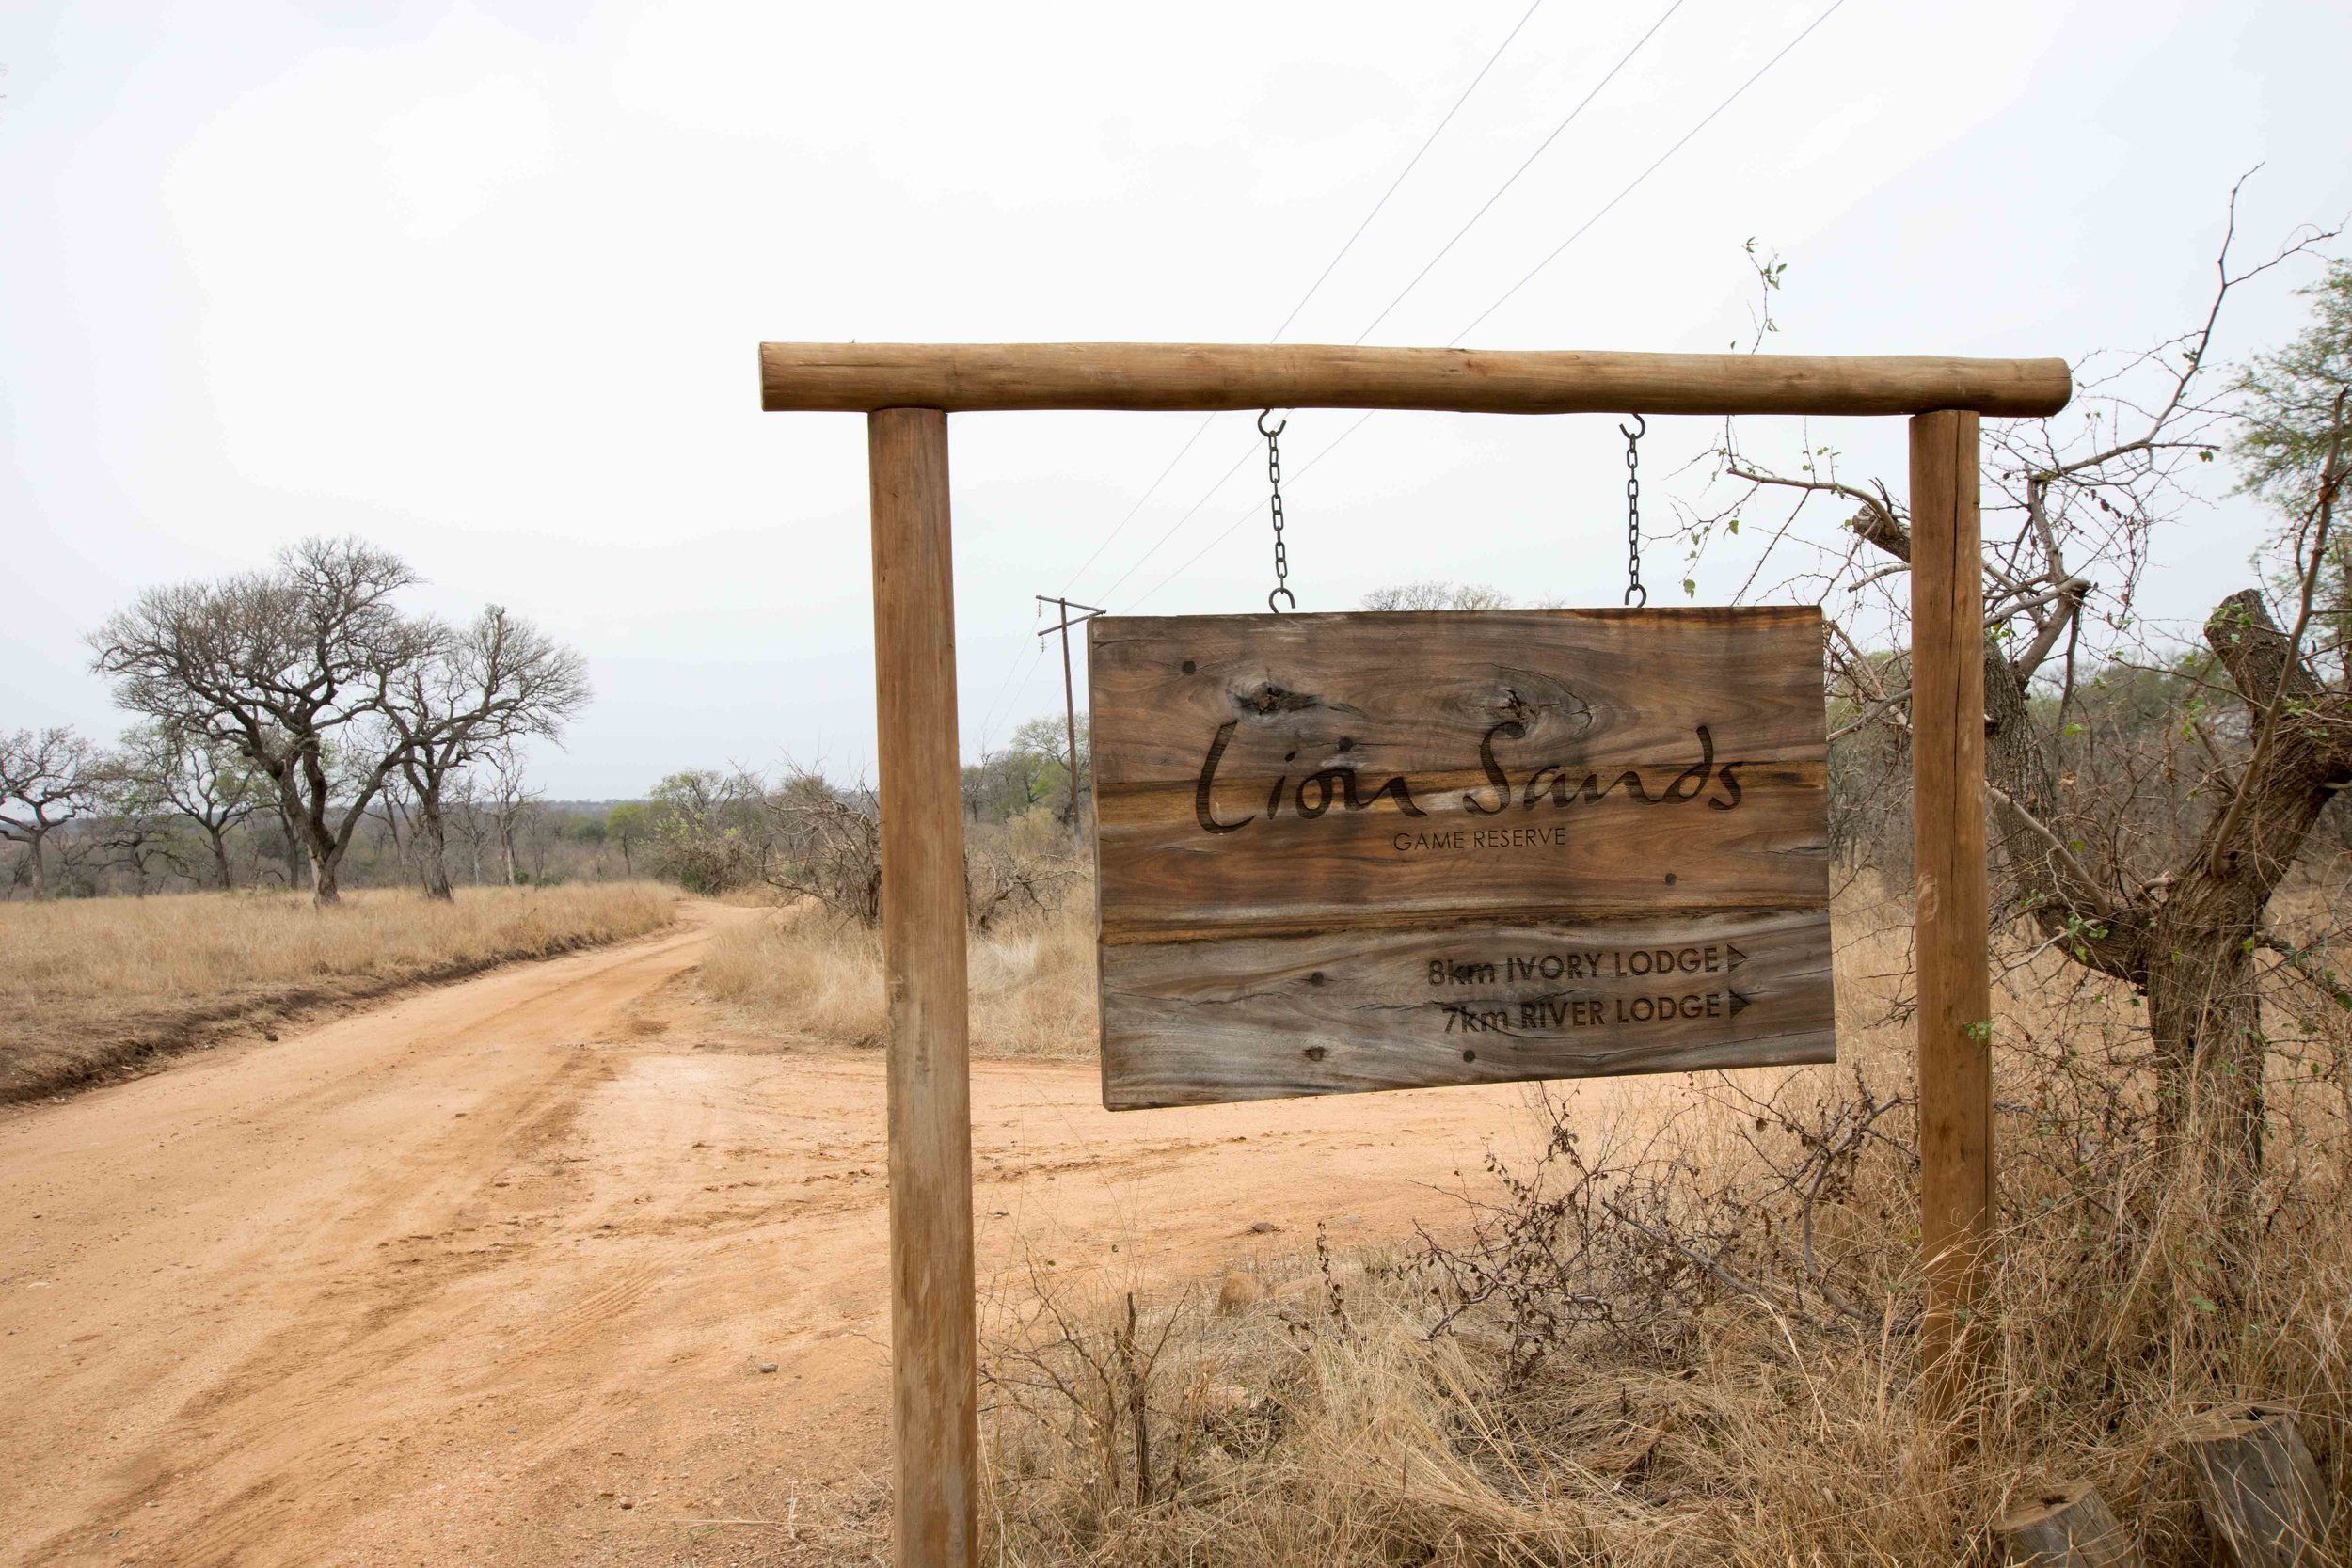 How to get to Lion Sands Ivory Lodge - is it easy to drive to Lion Sands Ivory Lodge?